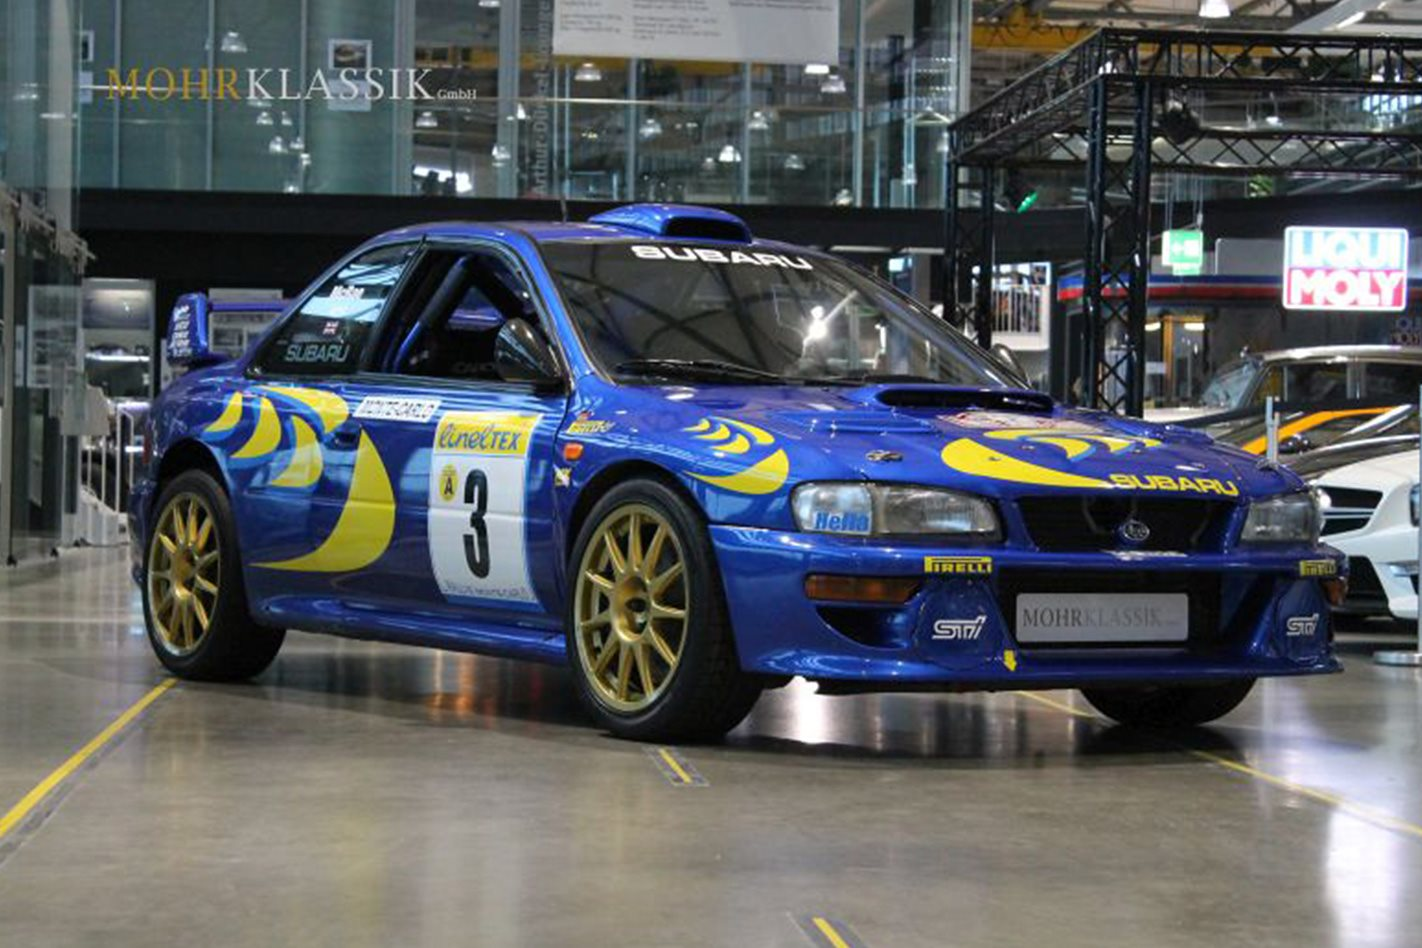 McRaes 1997 Subaru Impreza WRC for sale